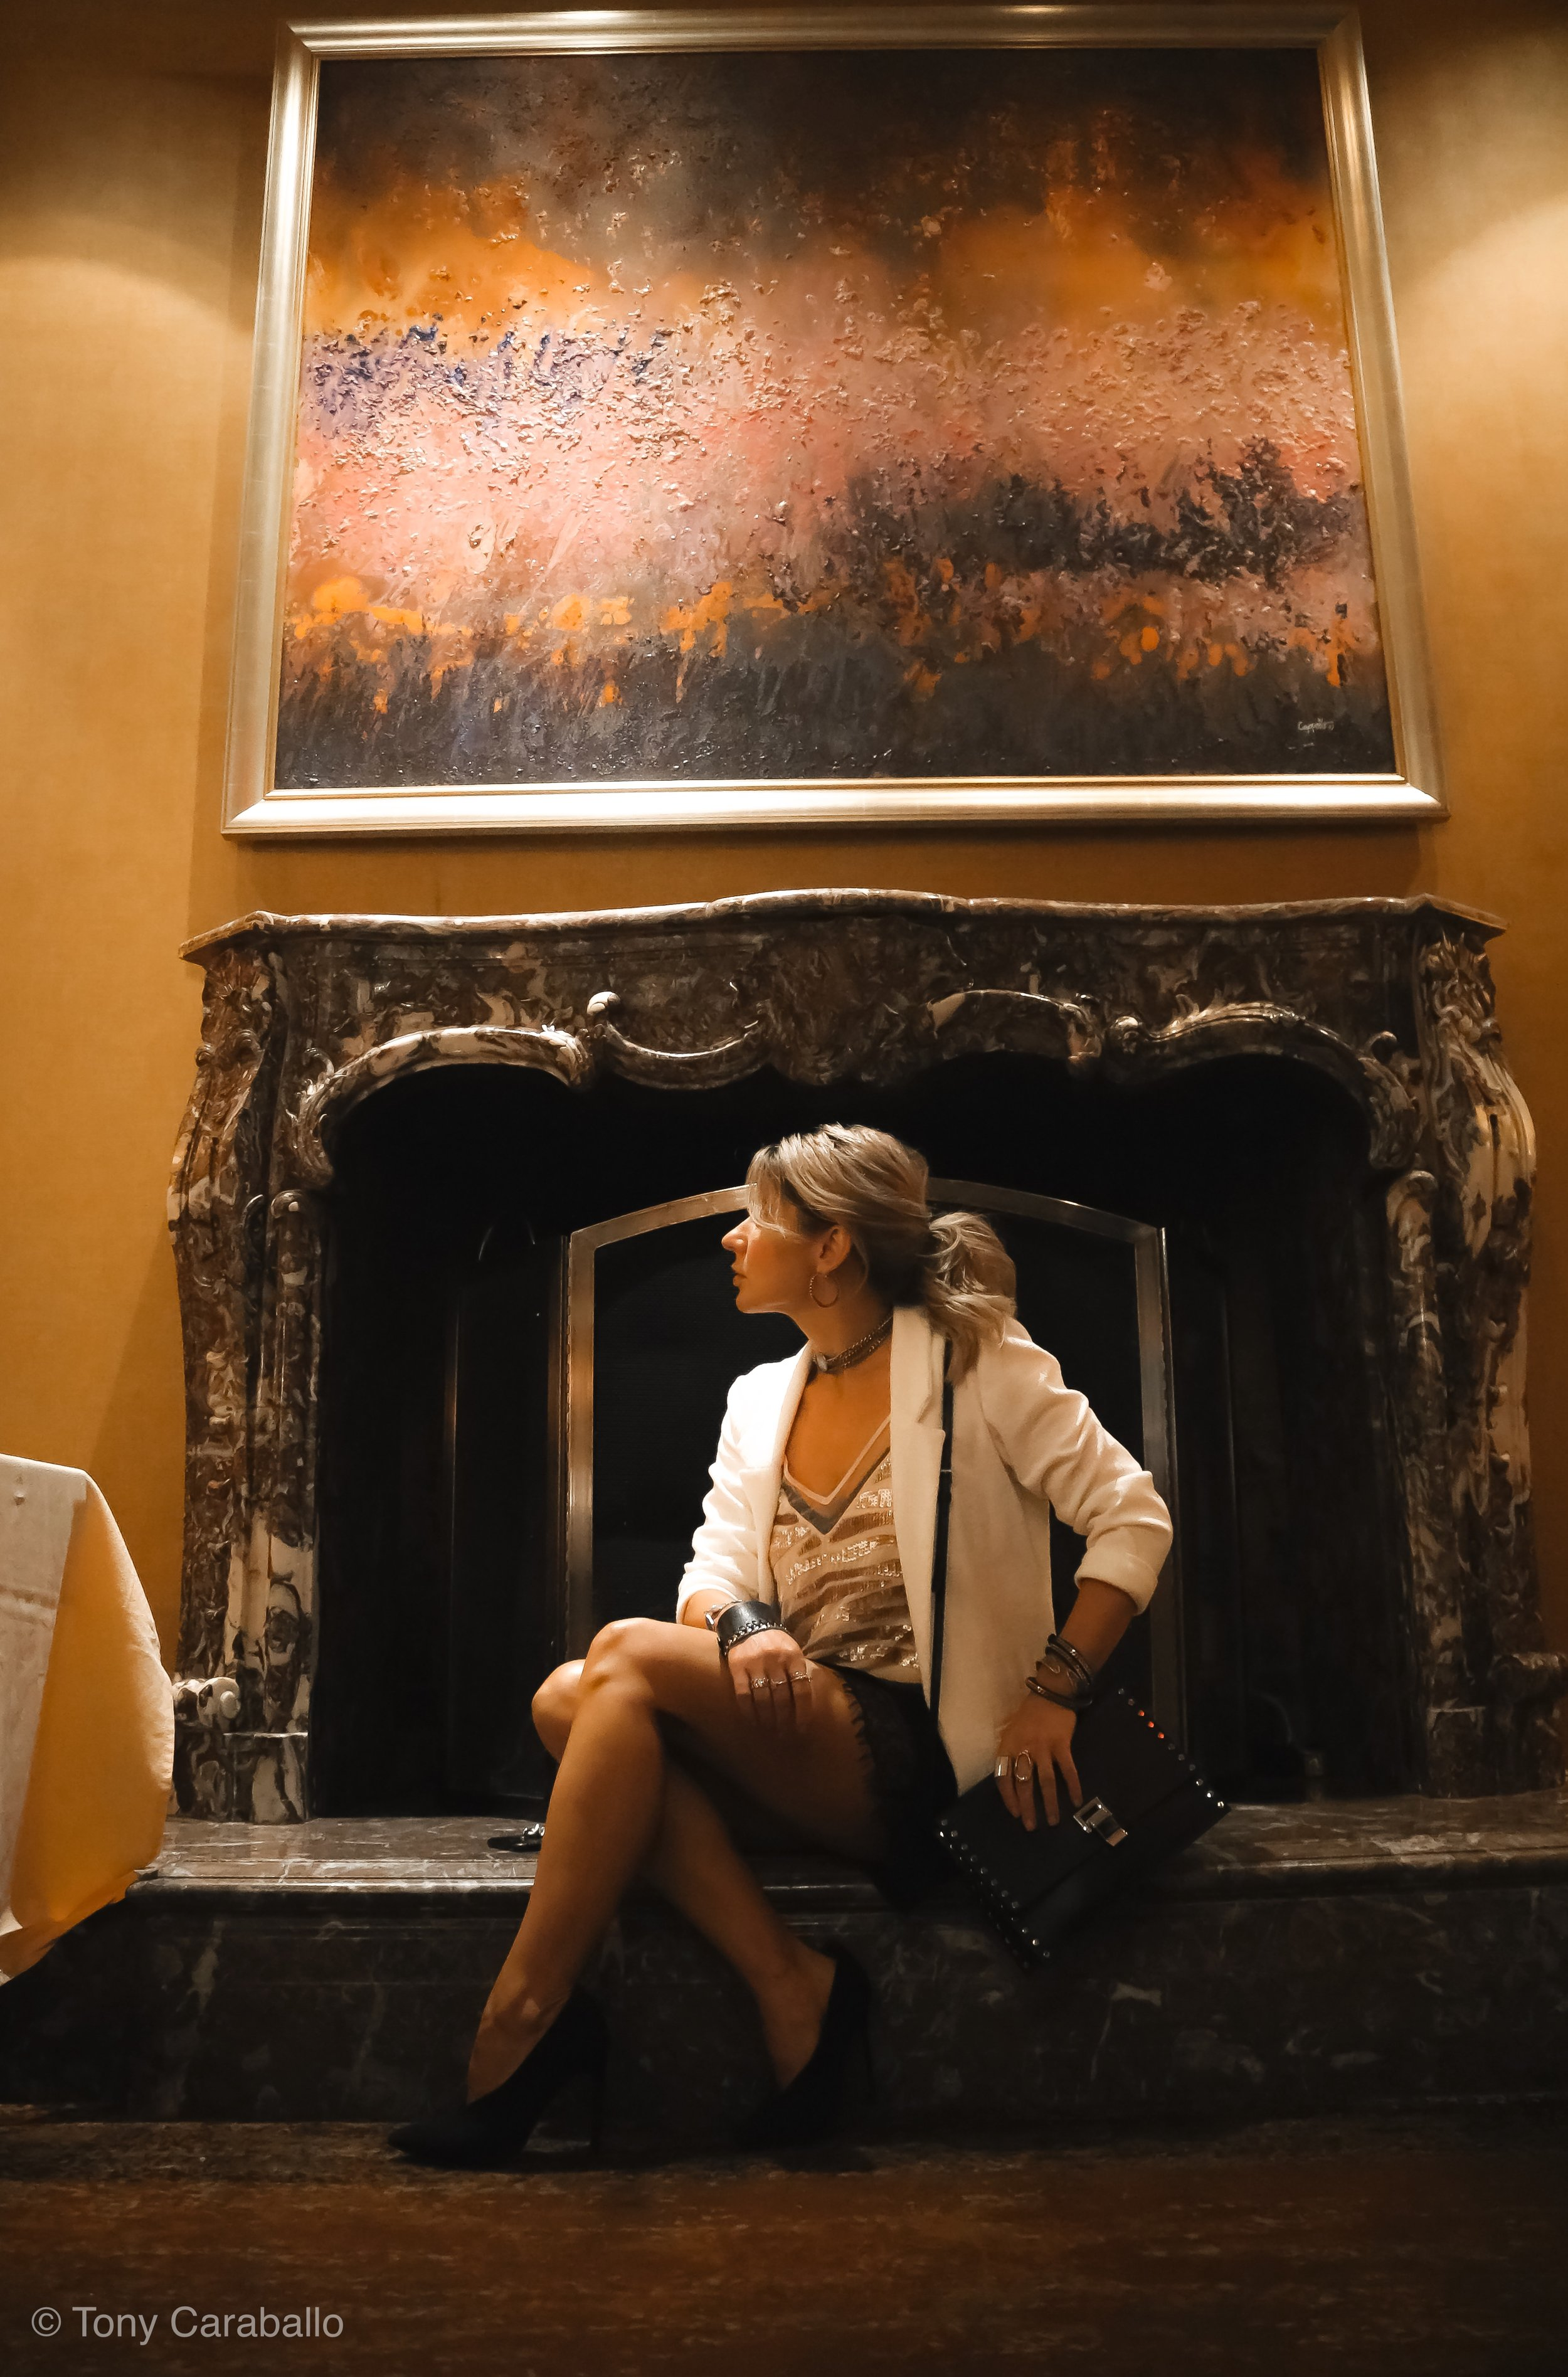 Ritz Carlton Isabel Alexander sitting down in the Lobby next to fireplace